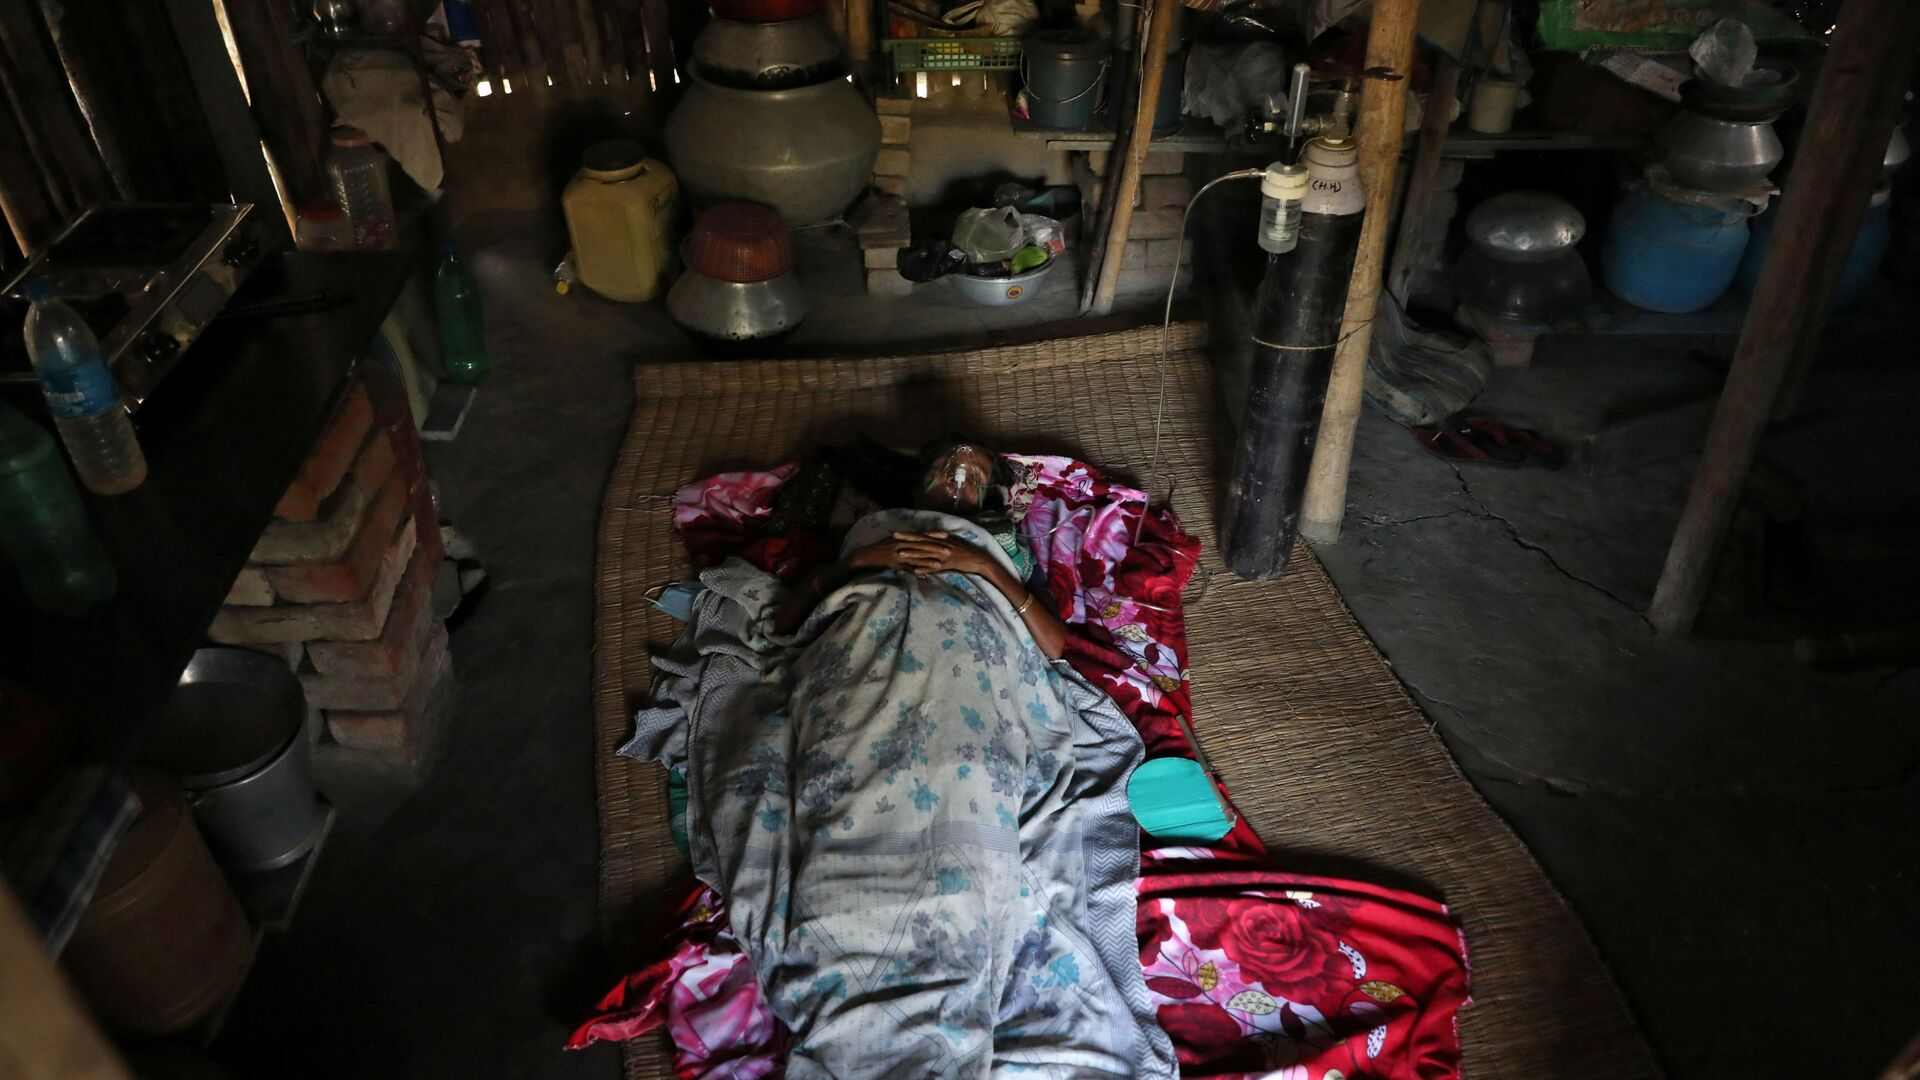 Parul Mondal, 50, a woman suffering from the coronavirus disease (COVID-19) receives oxygen support inside her house during a free medical camp set up to provide healthcare support to villagers, amidst the spread of the coronavirus disease (COVID-19), at Debipur village in South 24 Parganas district in the eastern West Bengal state, India, May 21, 2021 - Sputnik International, 1920, 22.09.2021